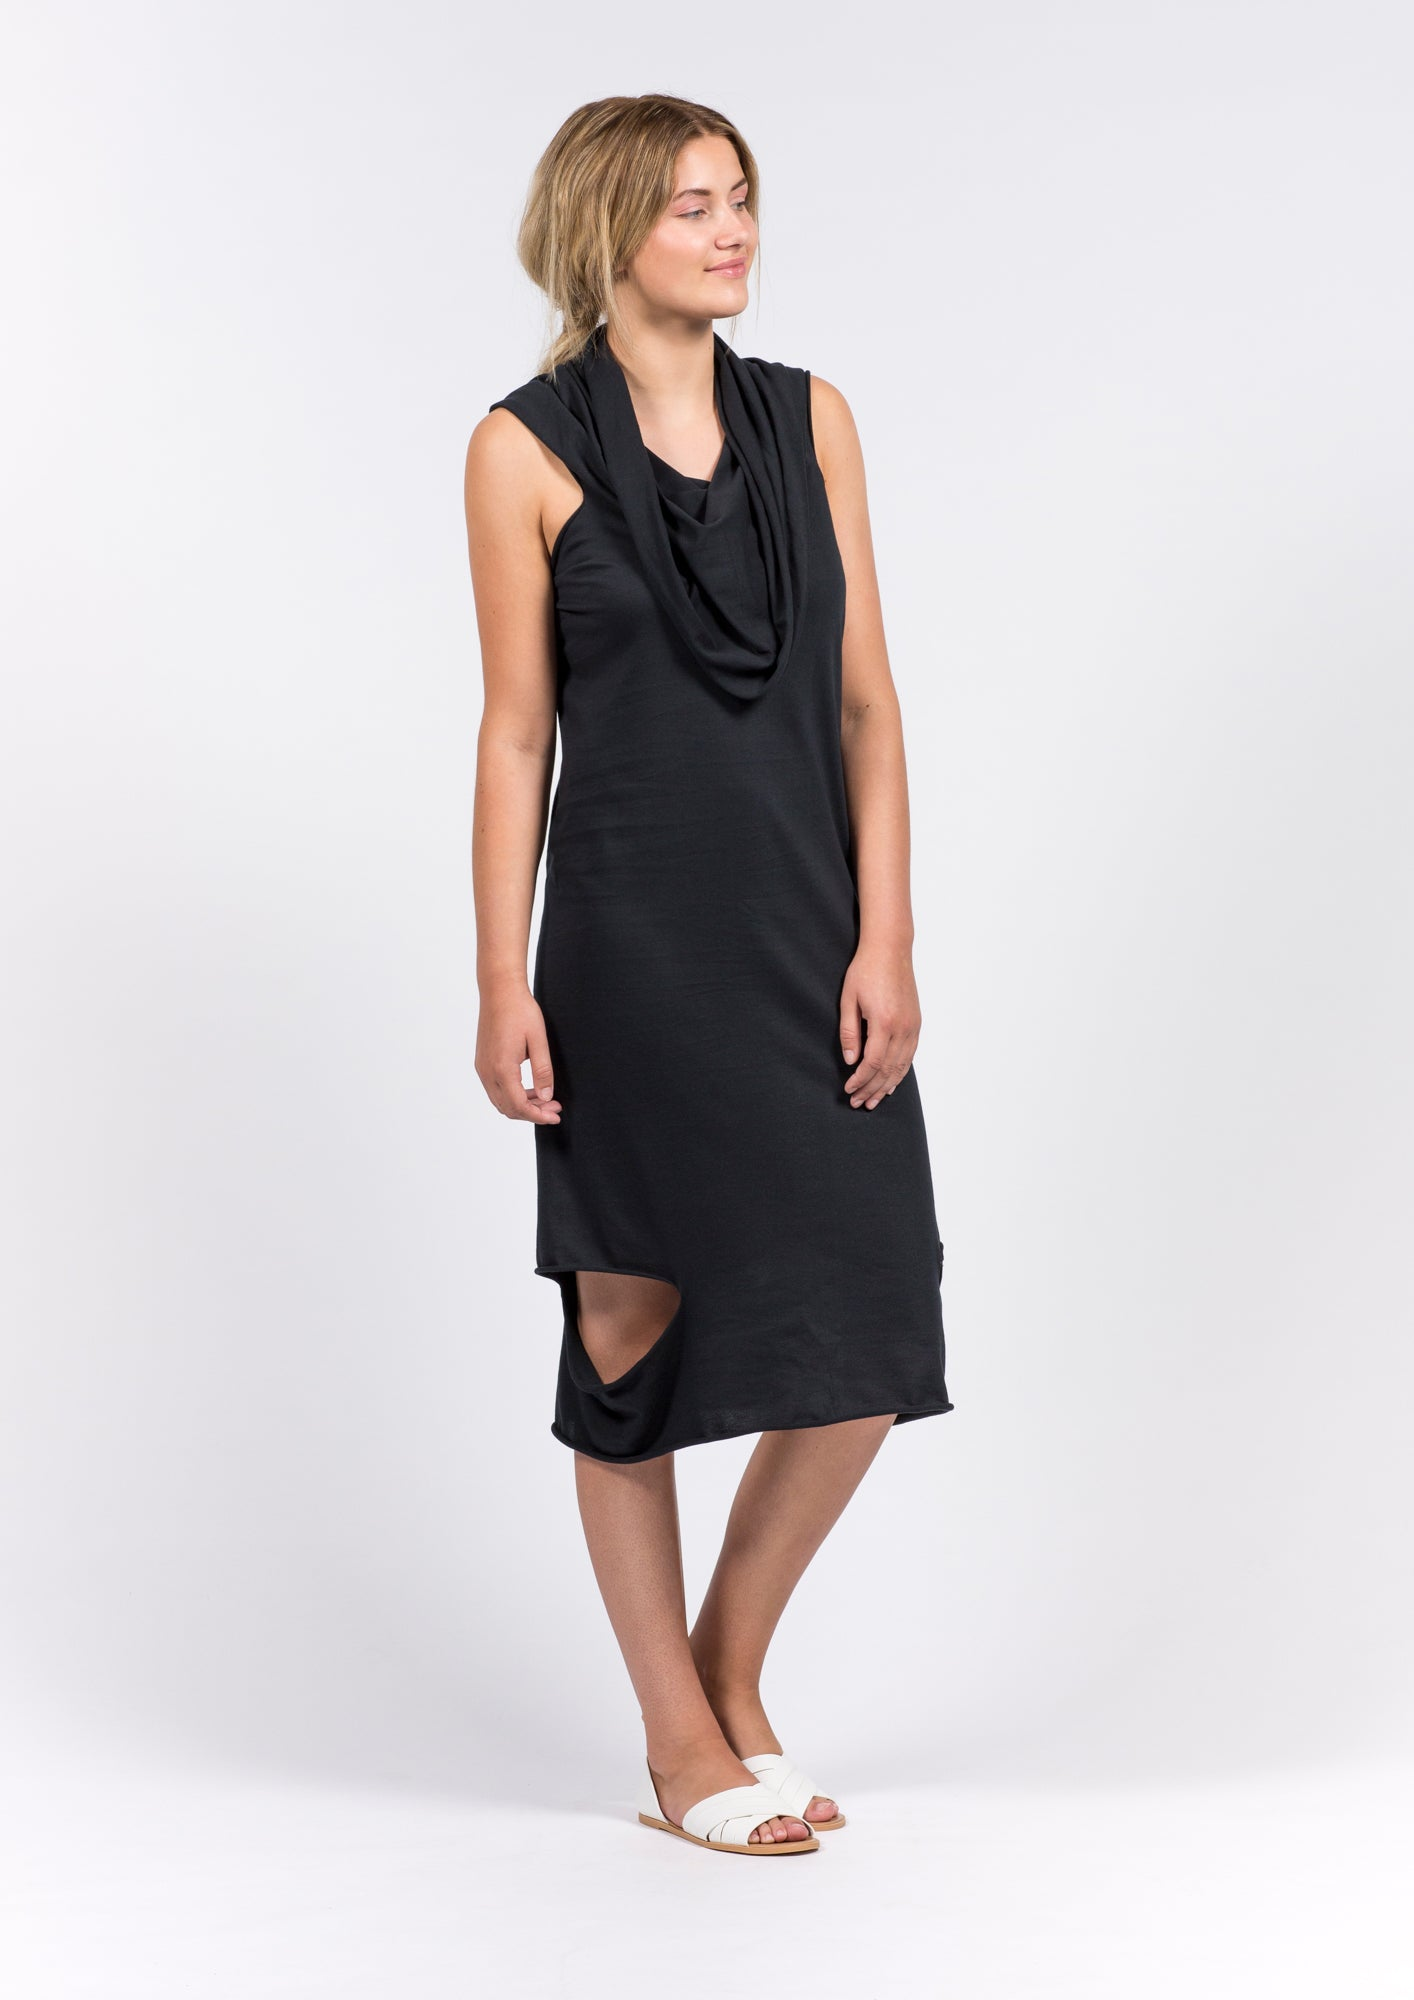 ELEMENTUM_MULTIFUNCTIONAL_ DRESS